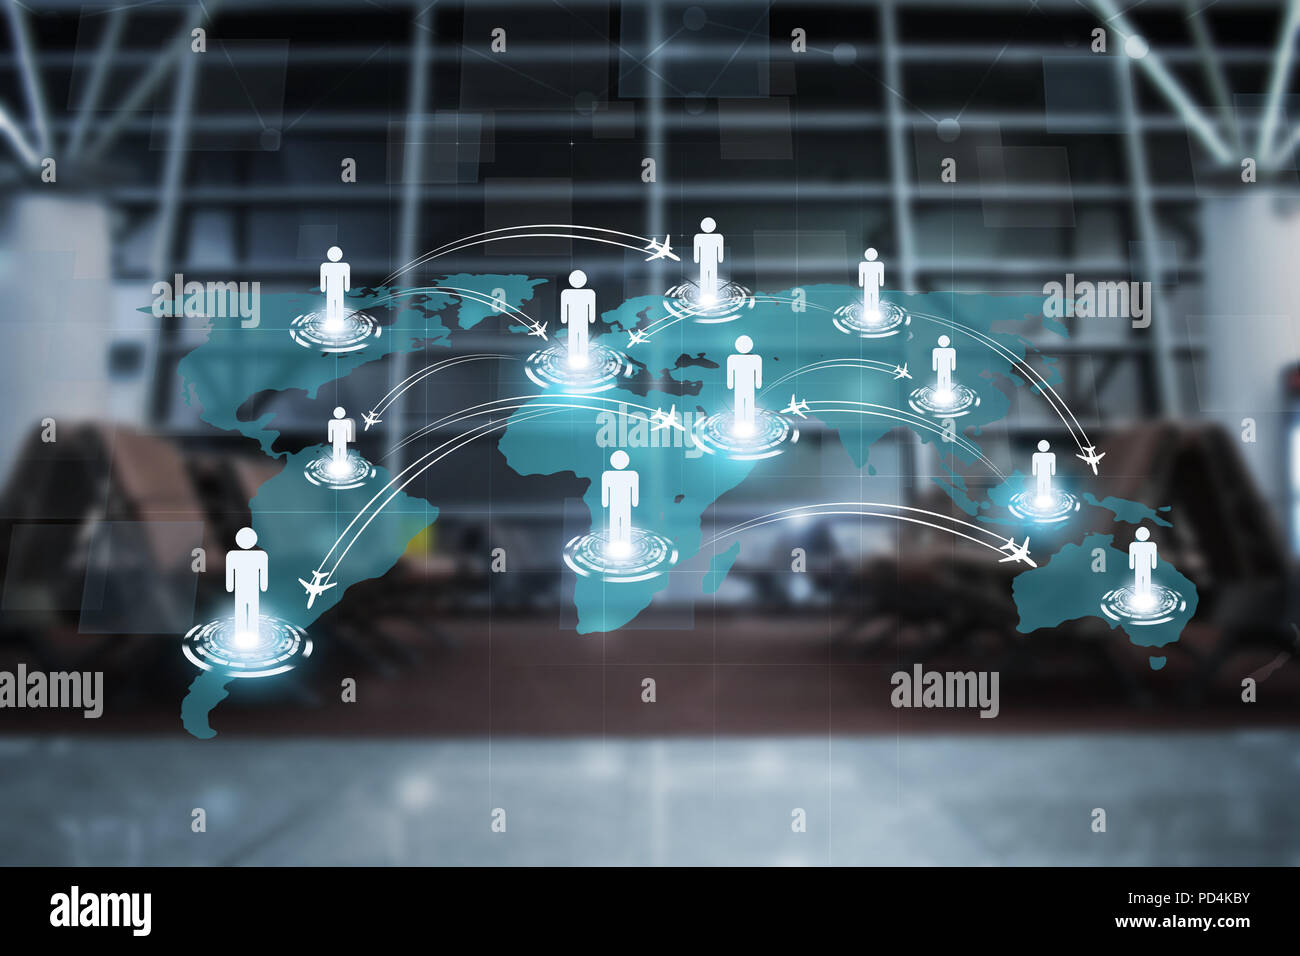 Concept global aviation personnes directions business background Photo Stock